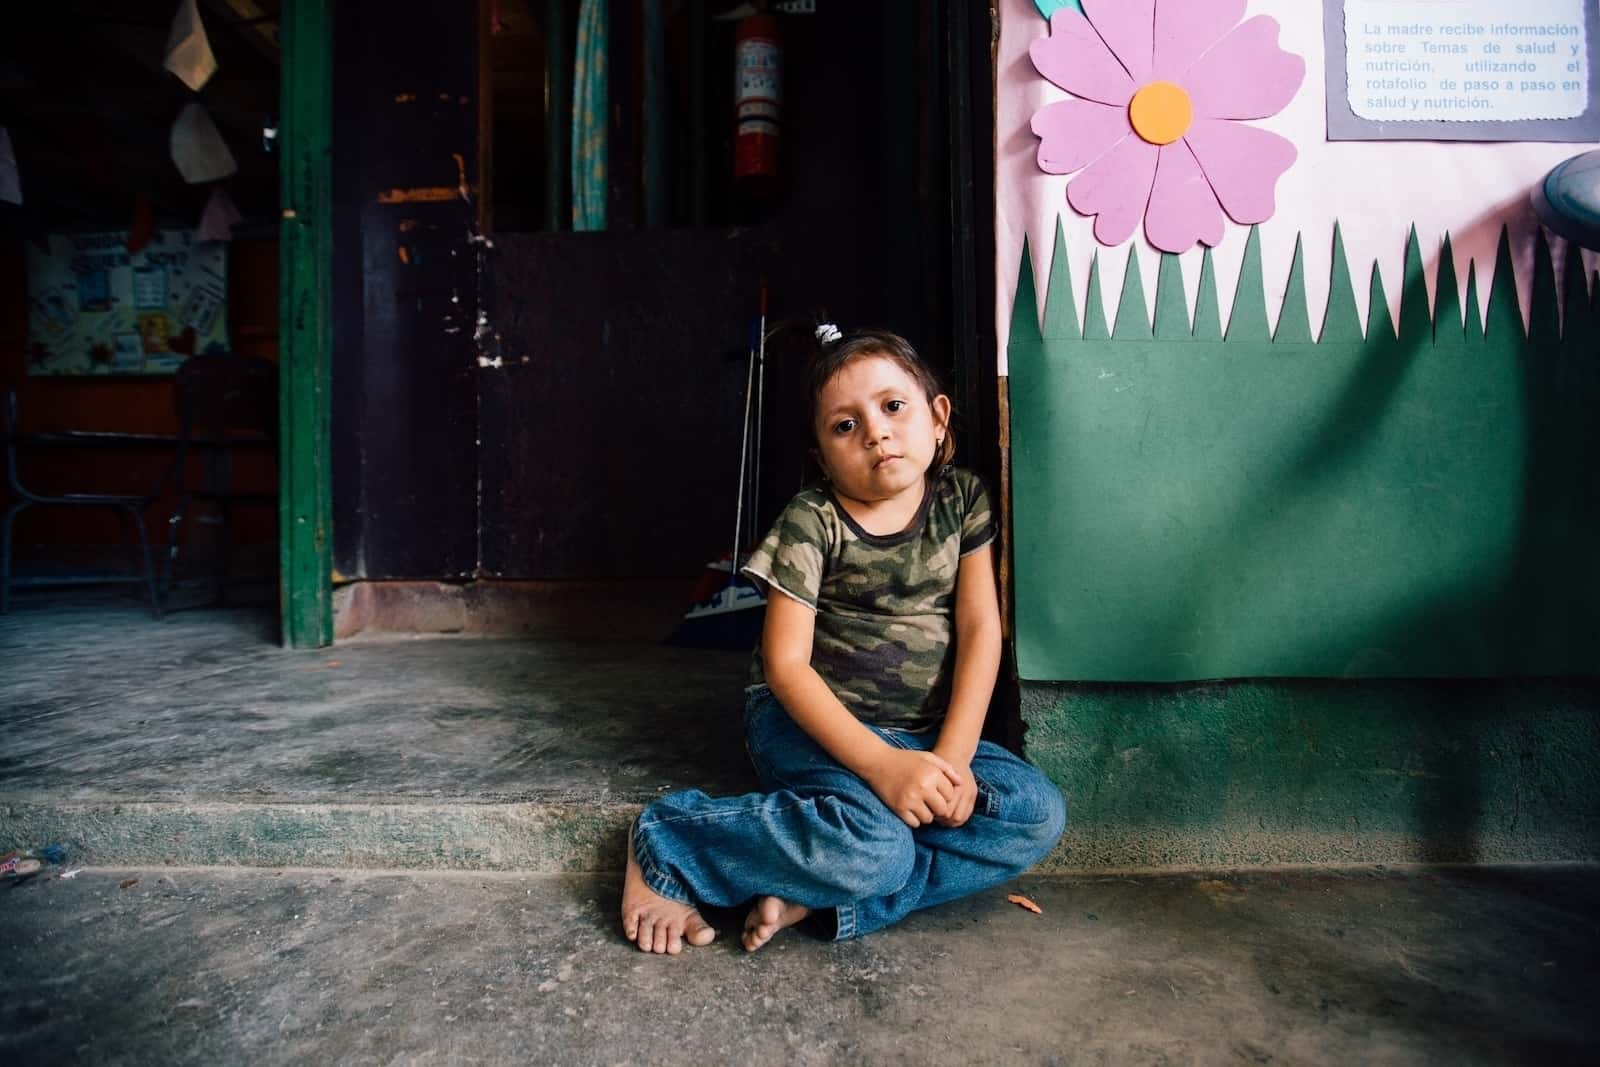 A little girl wearing a camouflage shirt, jeans and bare feet, sits on a concrete step, looking sad.